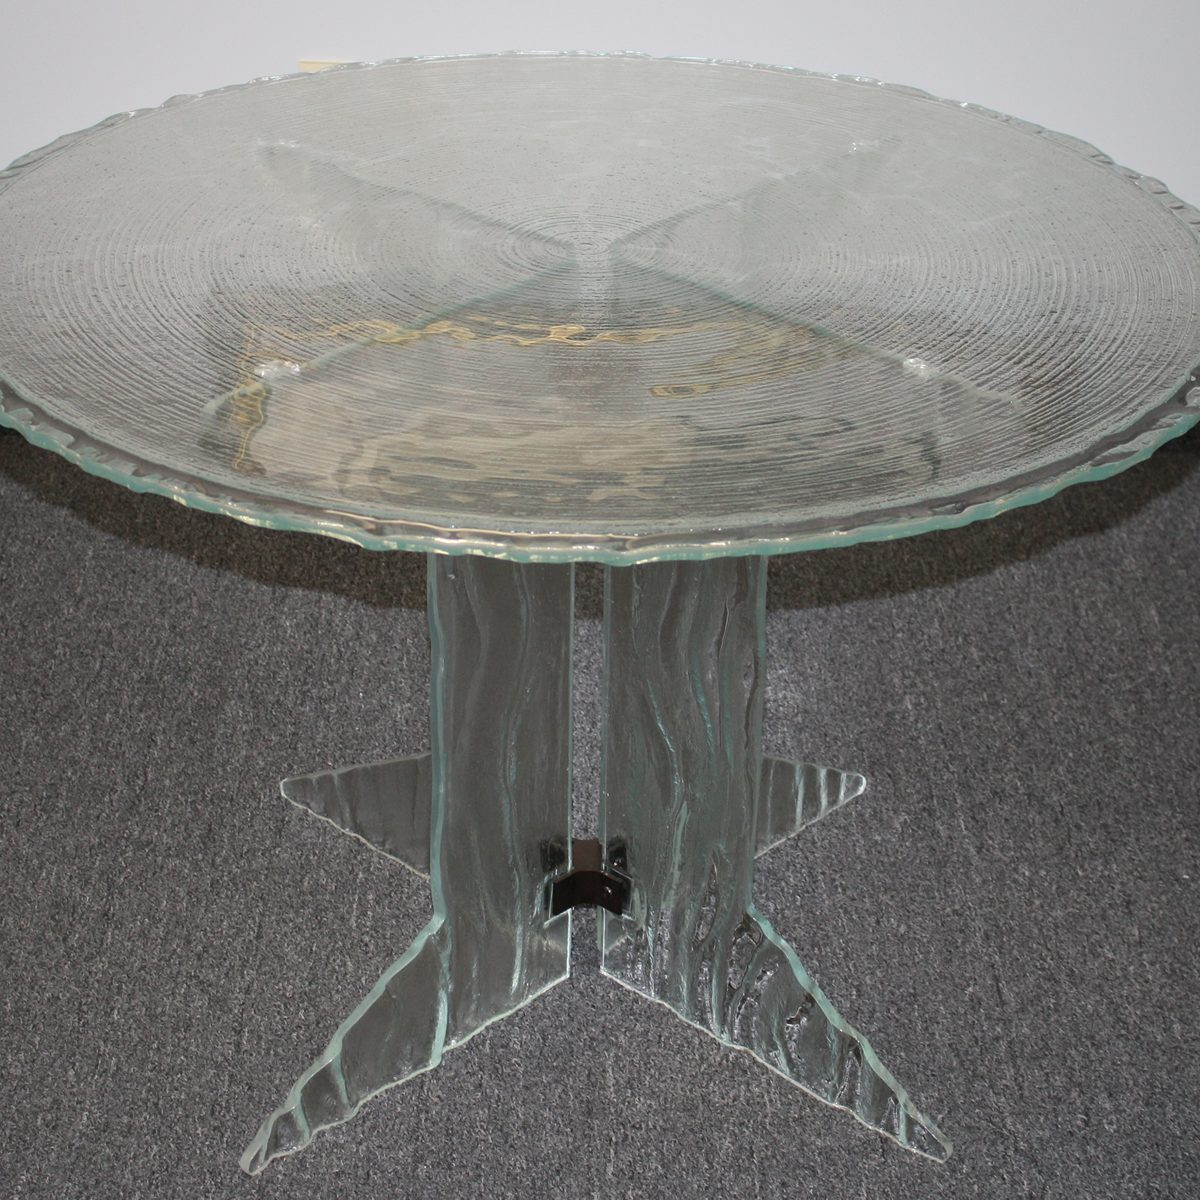 Cast Glass Table - Table & Furniture Glass Tops